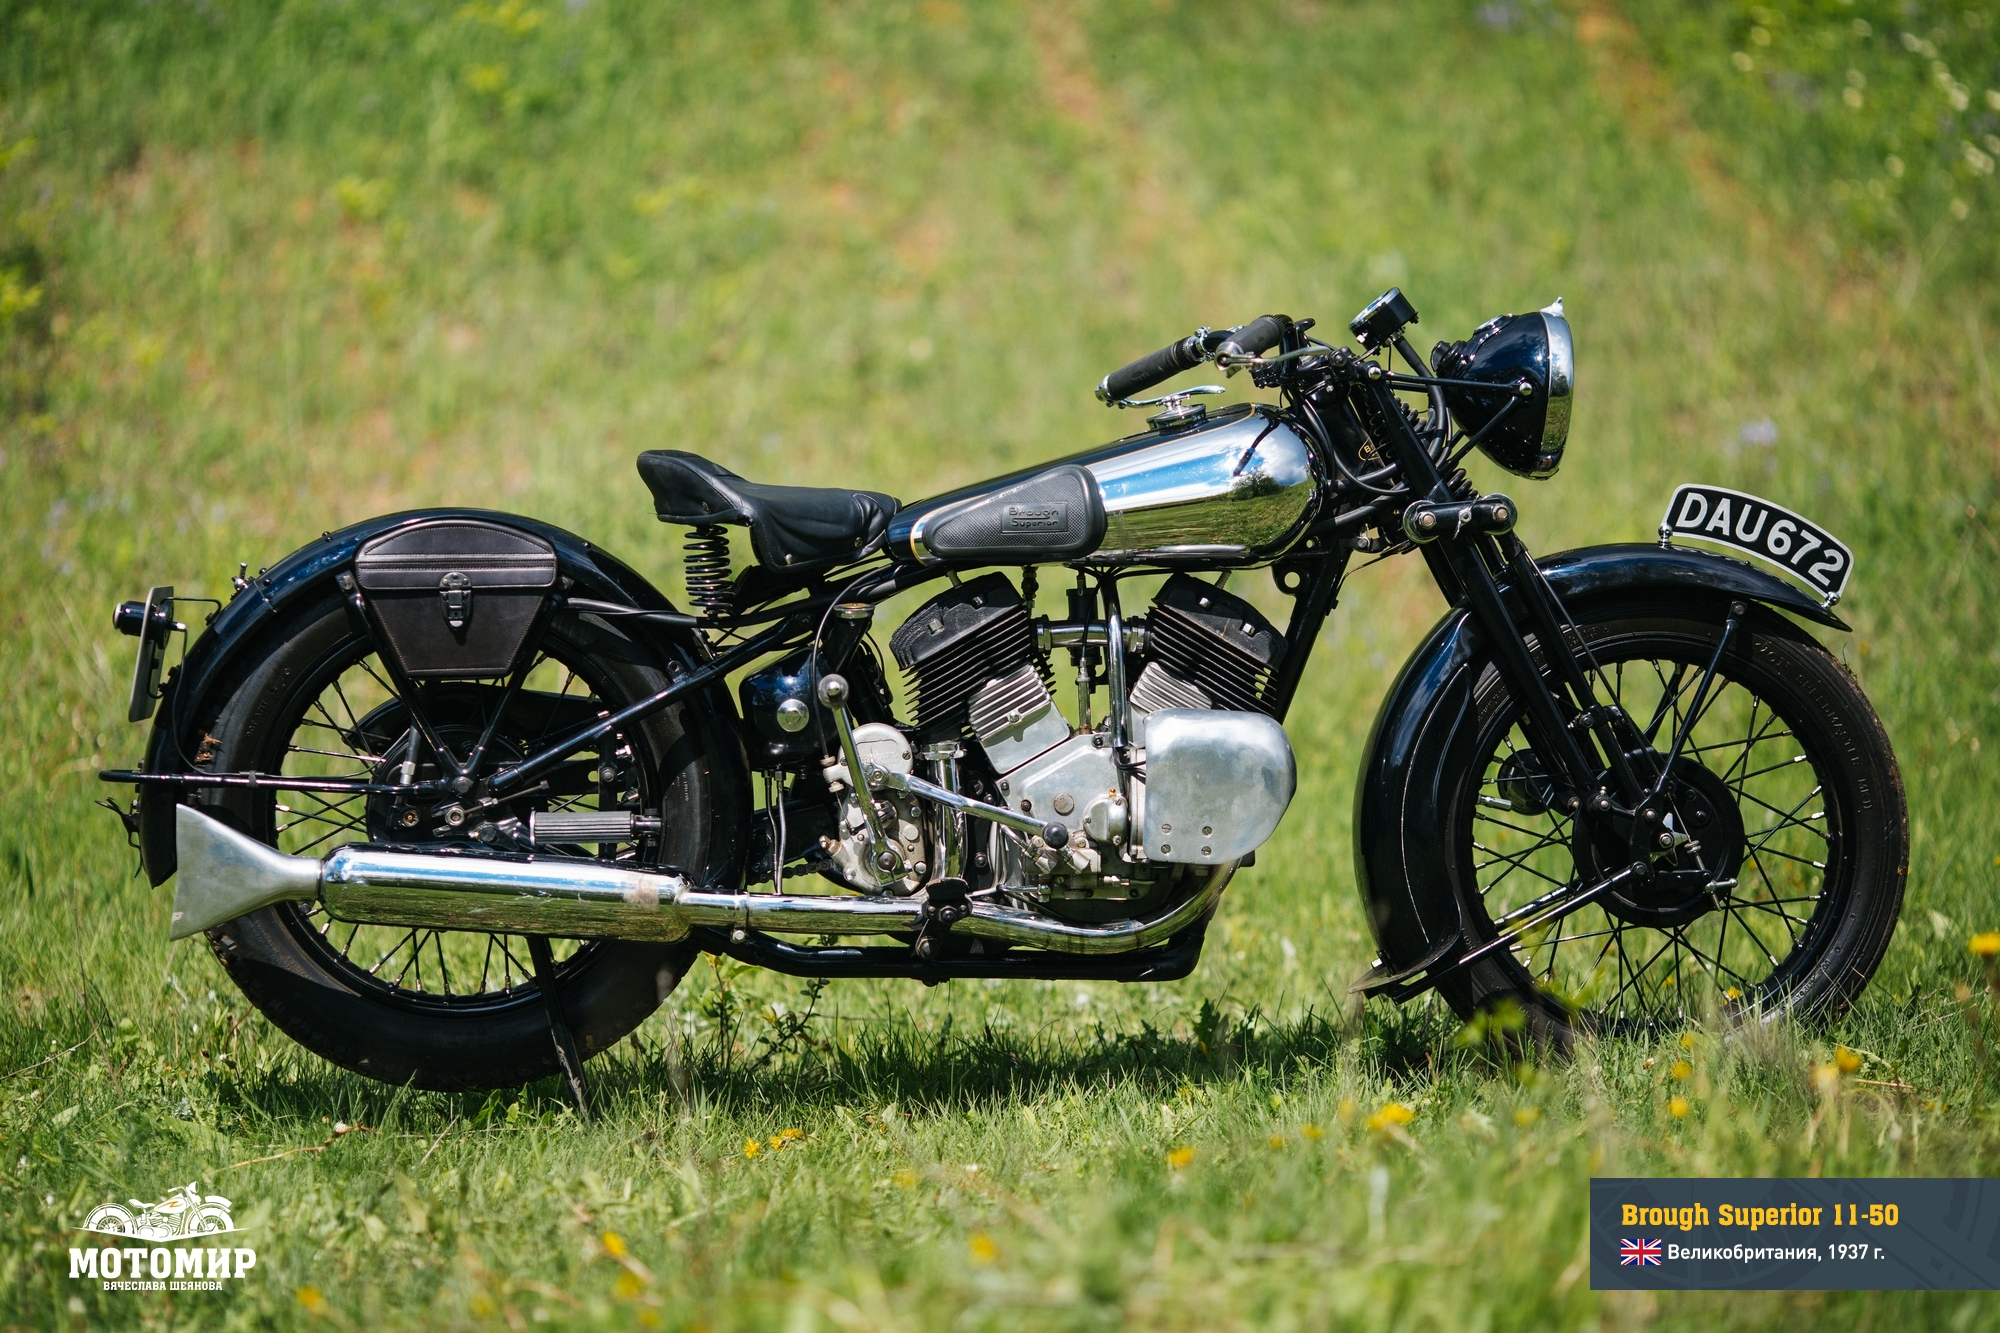 brough-superior-11-50-201509-web-05